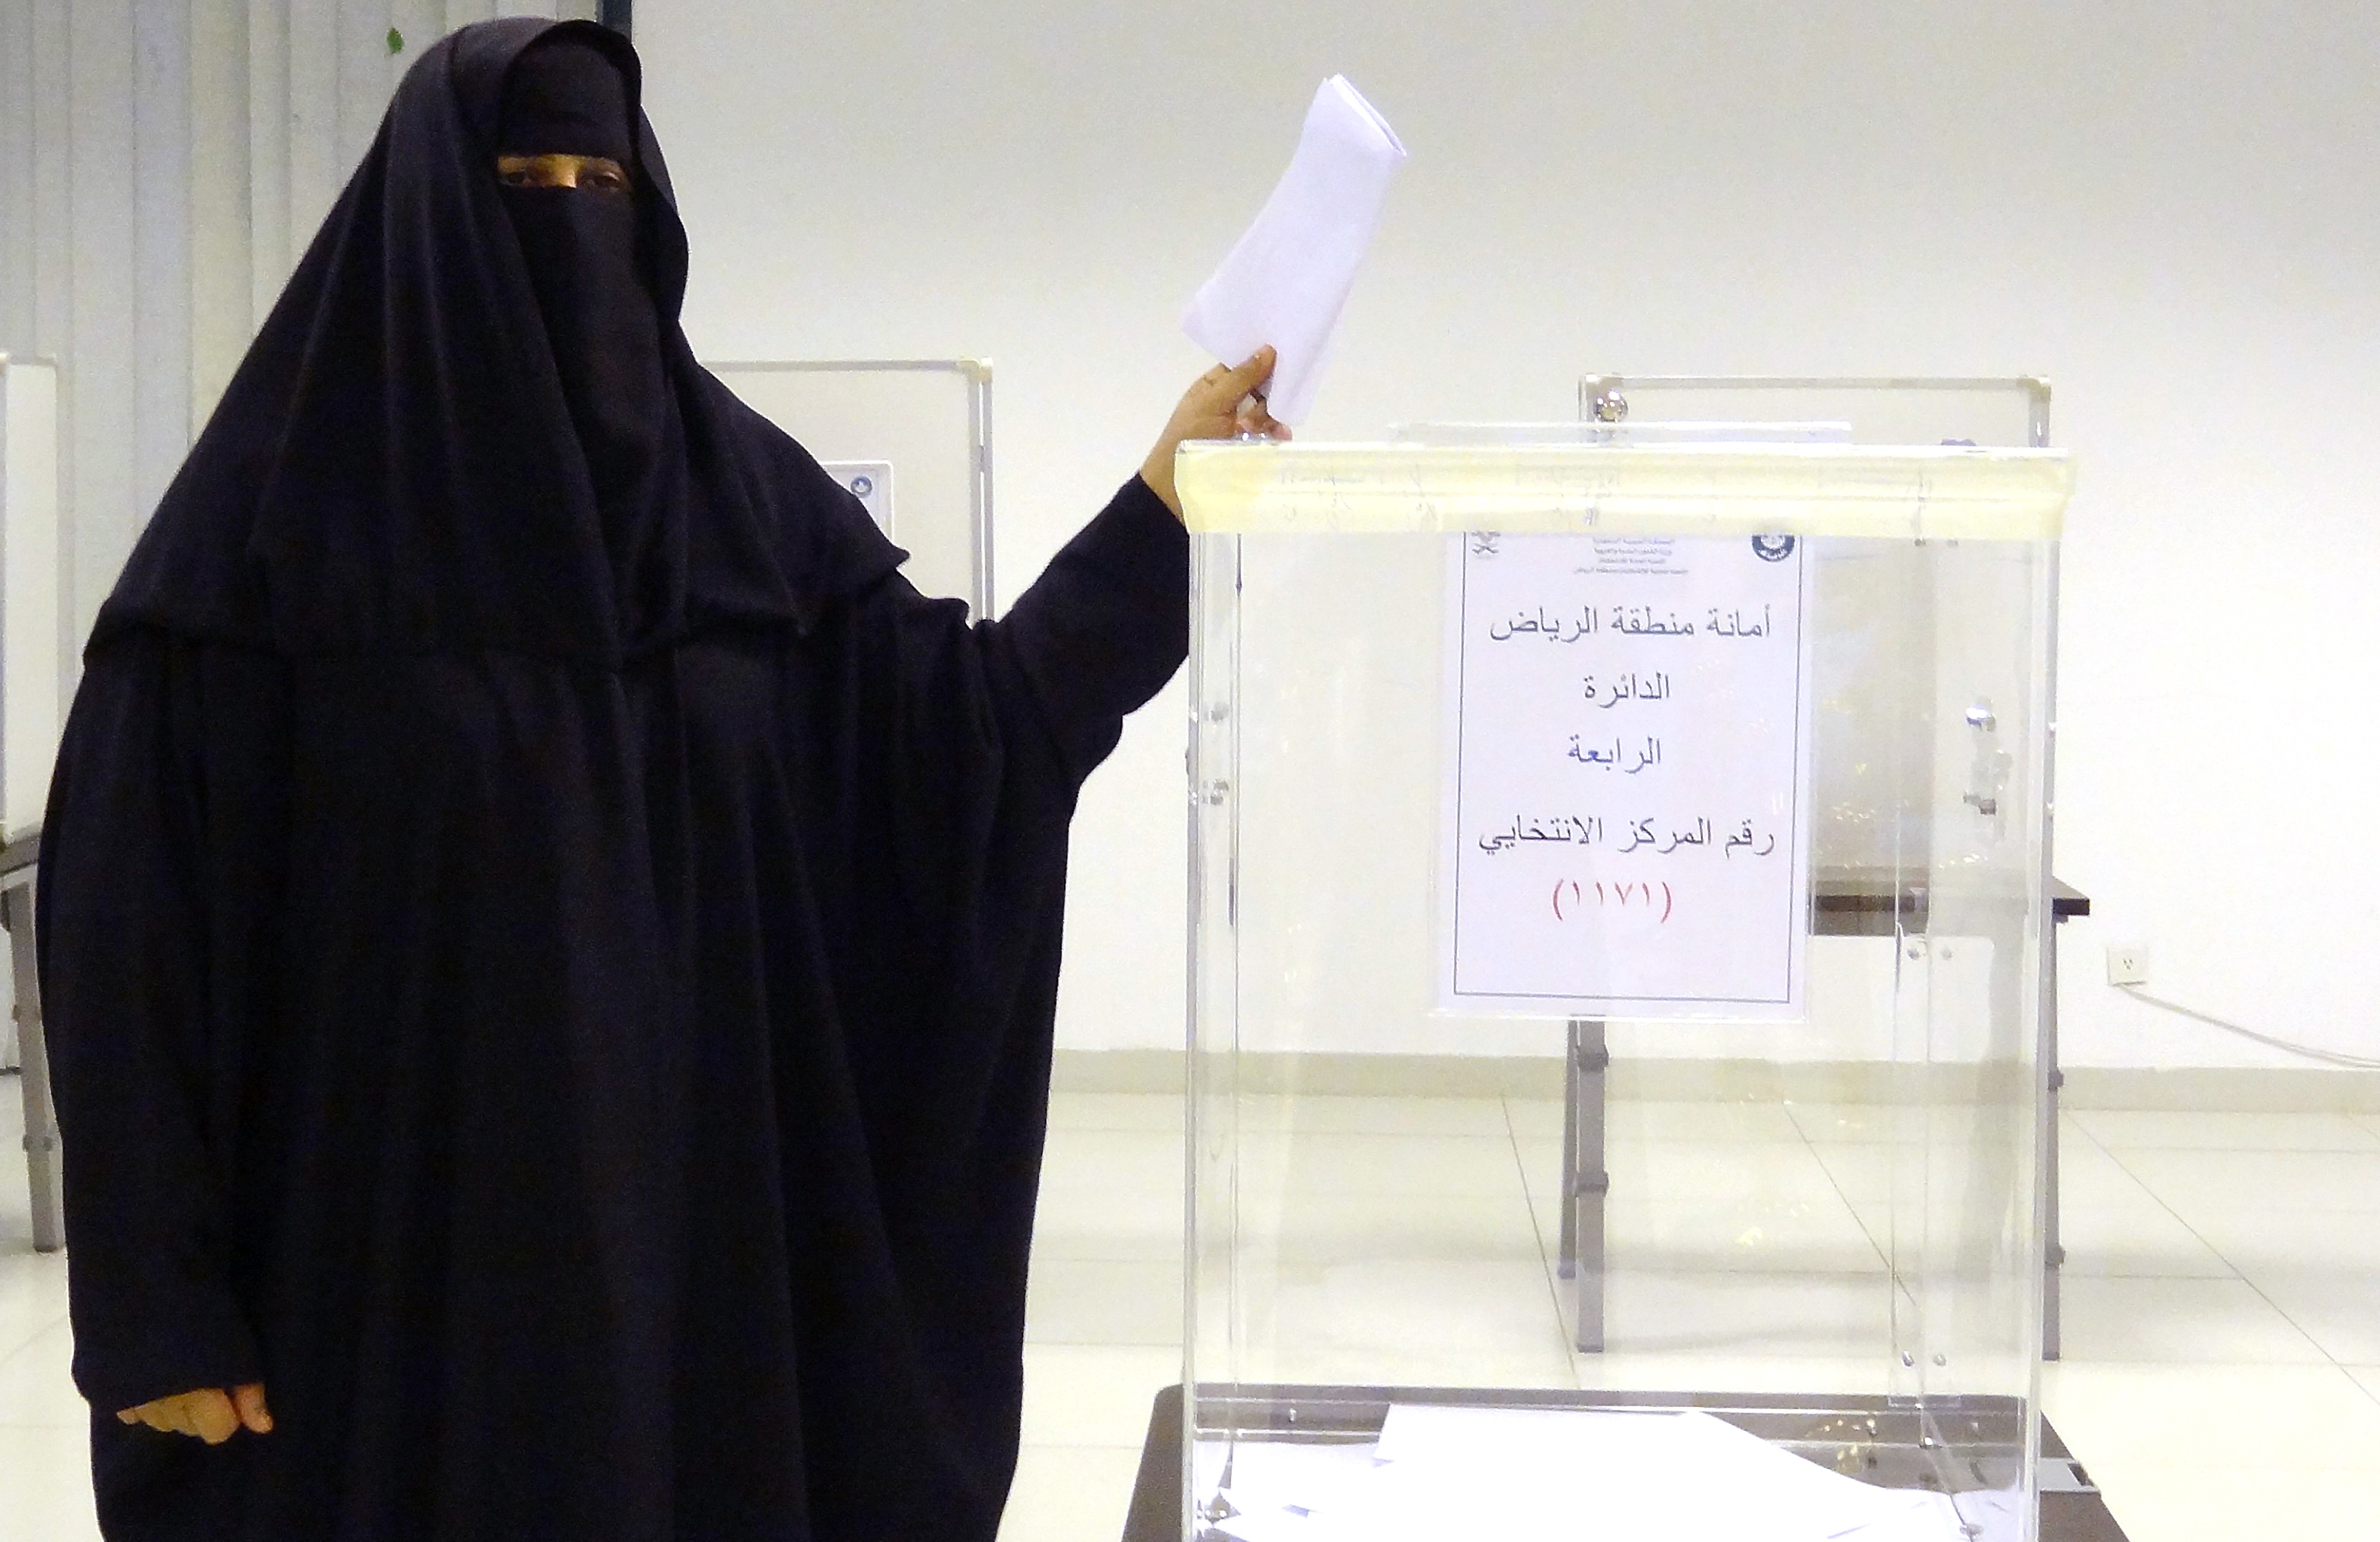 A Saudi woman casts her ballot in an election centre in the Saudi capital of Riyadh, on Dec.12, 2015.